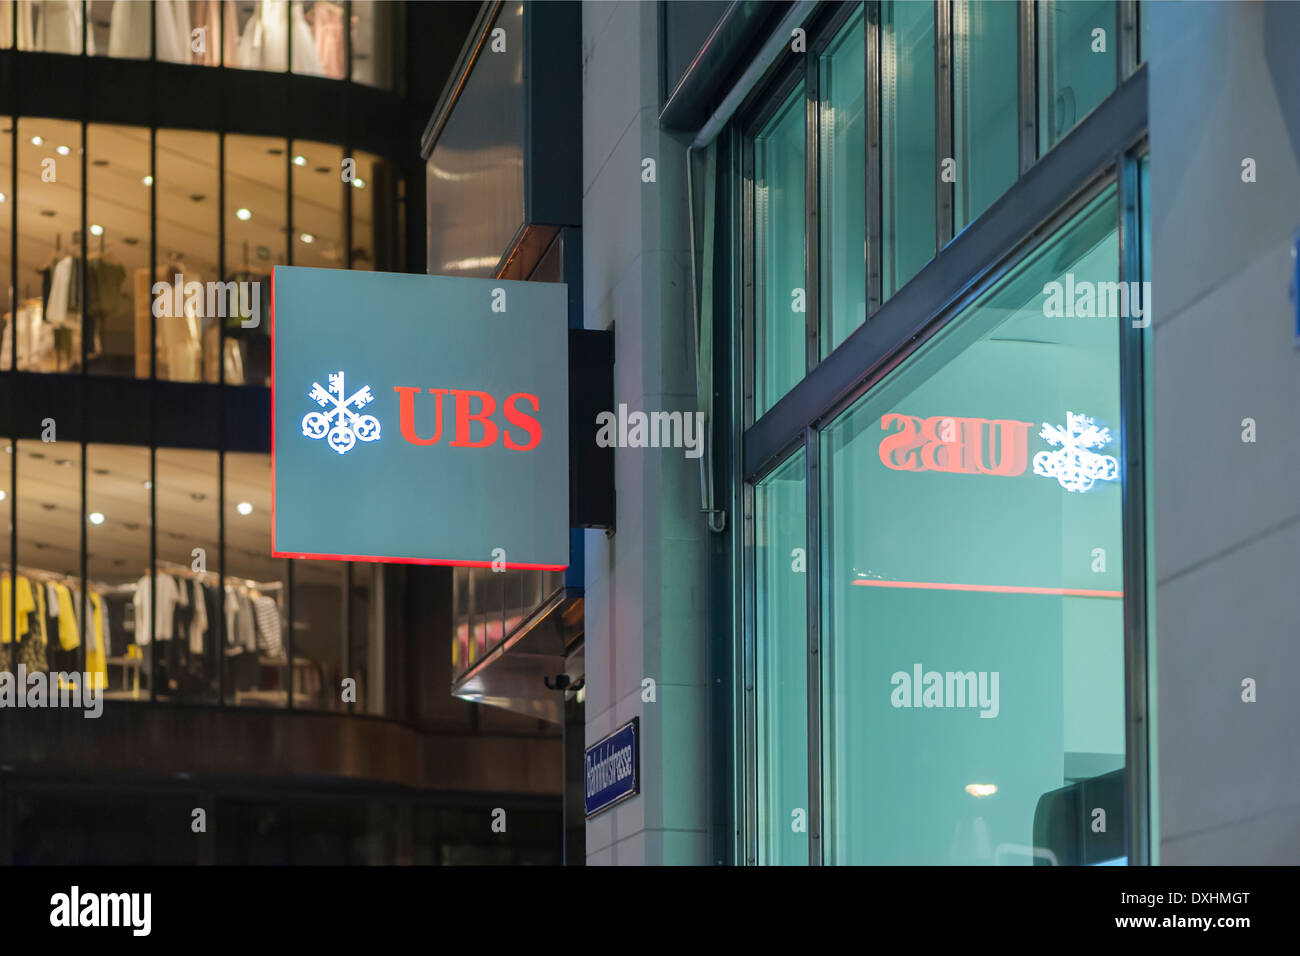 Entrance of a branch of UBS, Switzerland's largest bank on Bahnhofstrasse in Zurich, Switzerland, at night. - Stock Image